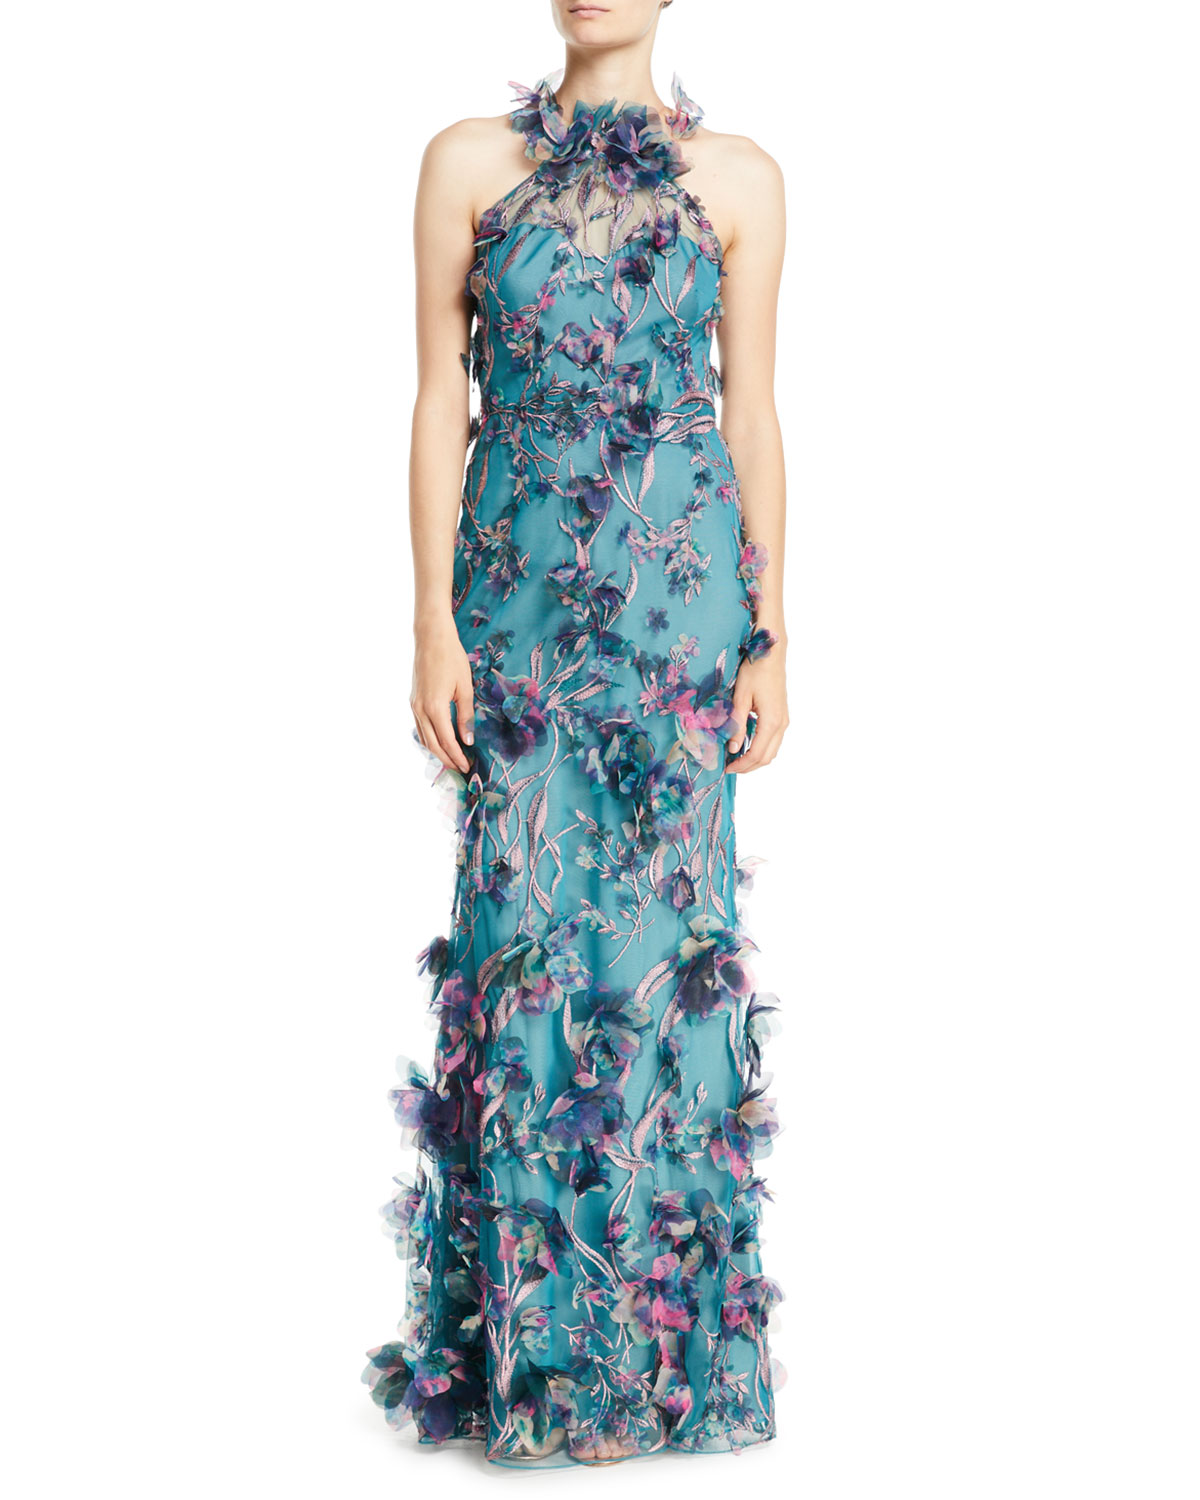 Marchesa Notte 3D Floral Halter Gown with Embroidery | Neiman Marcus